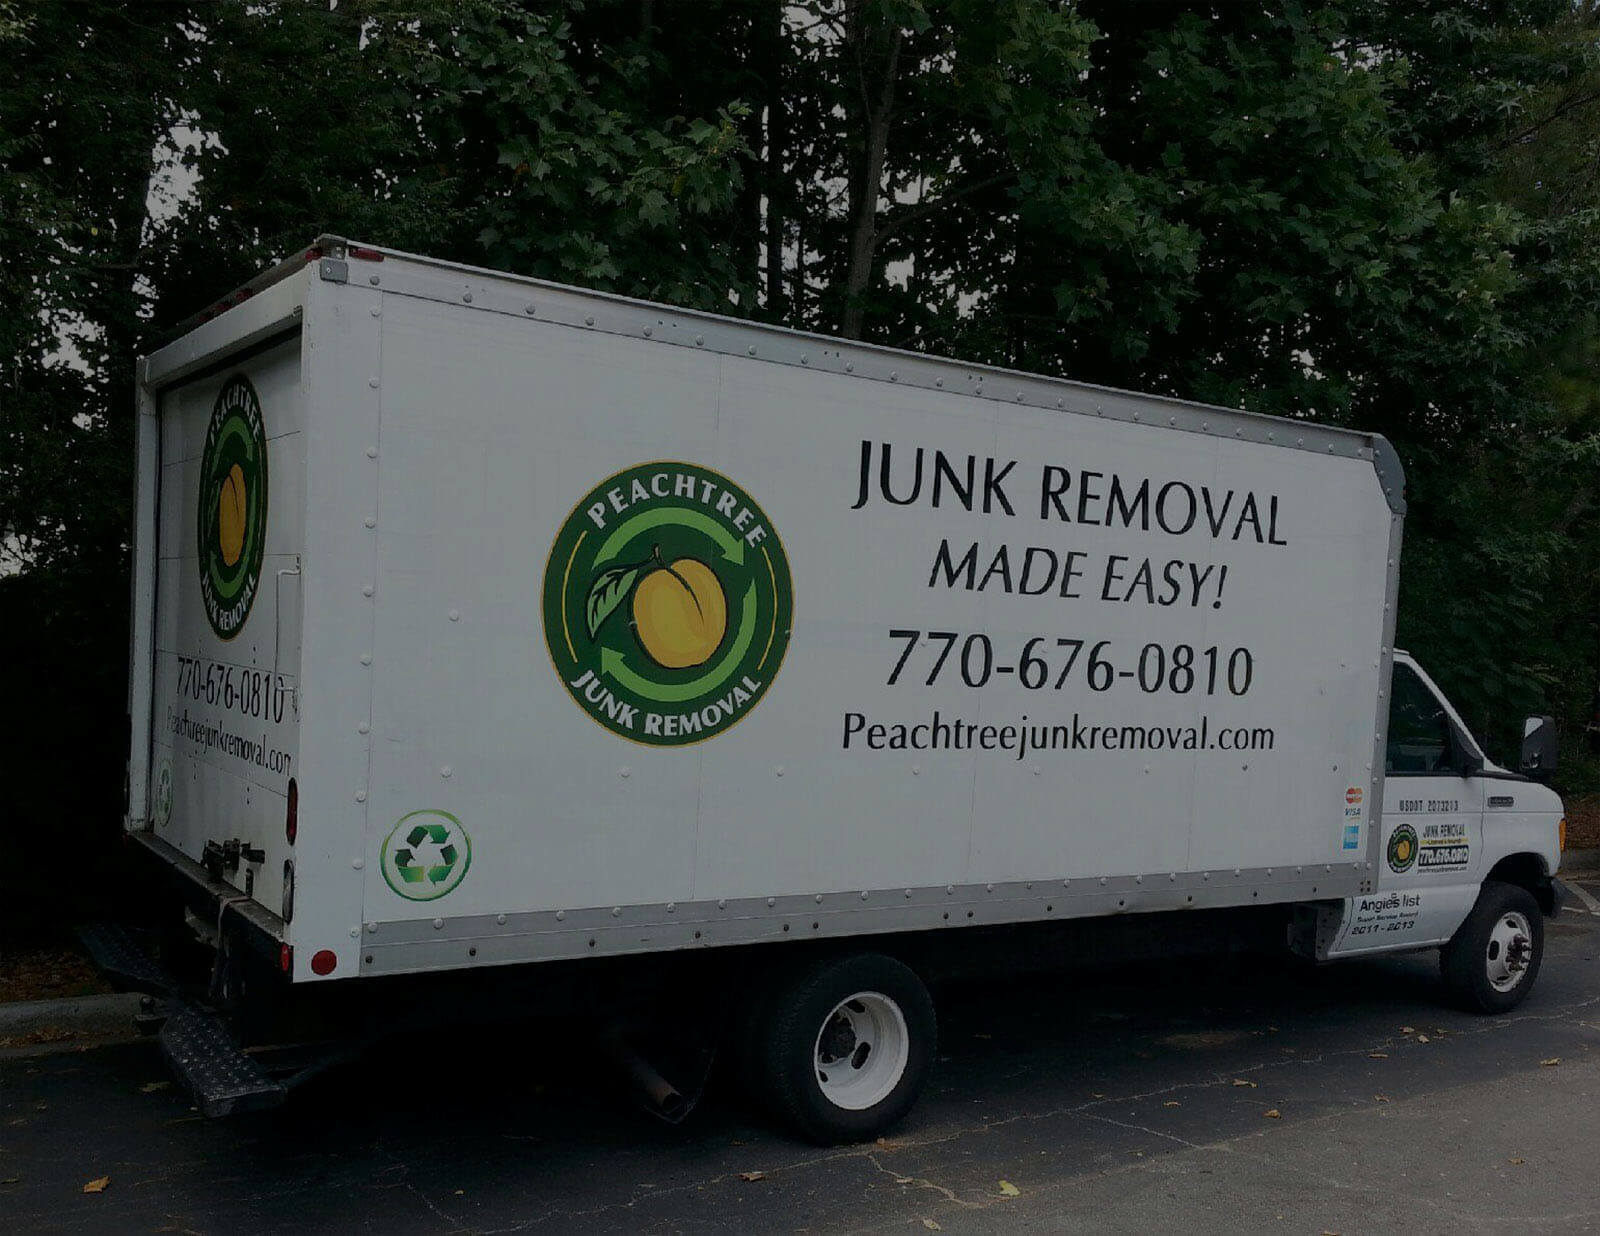 Peachtree Junk Removal | Atlanta Junk Hauling and Debris Removal For